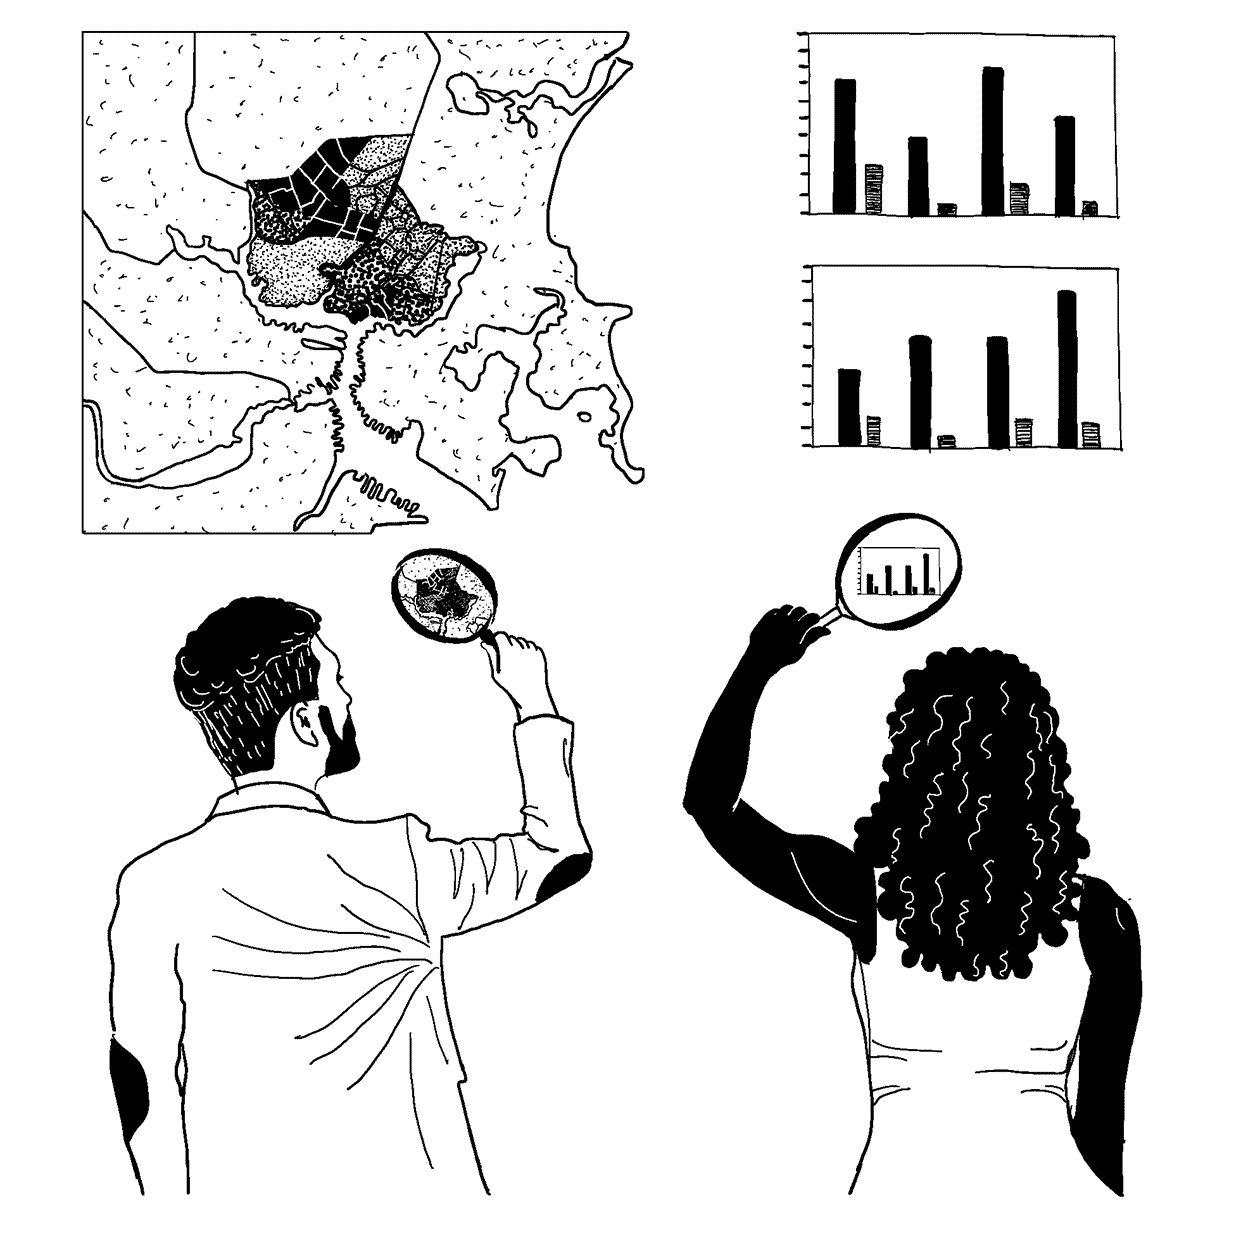 Line drawing showing two people standing in front of a wall, each holding magnifying glasses. Maps and charts are displayed on the wall, and the two people are examining them with their magnifying glasses.